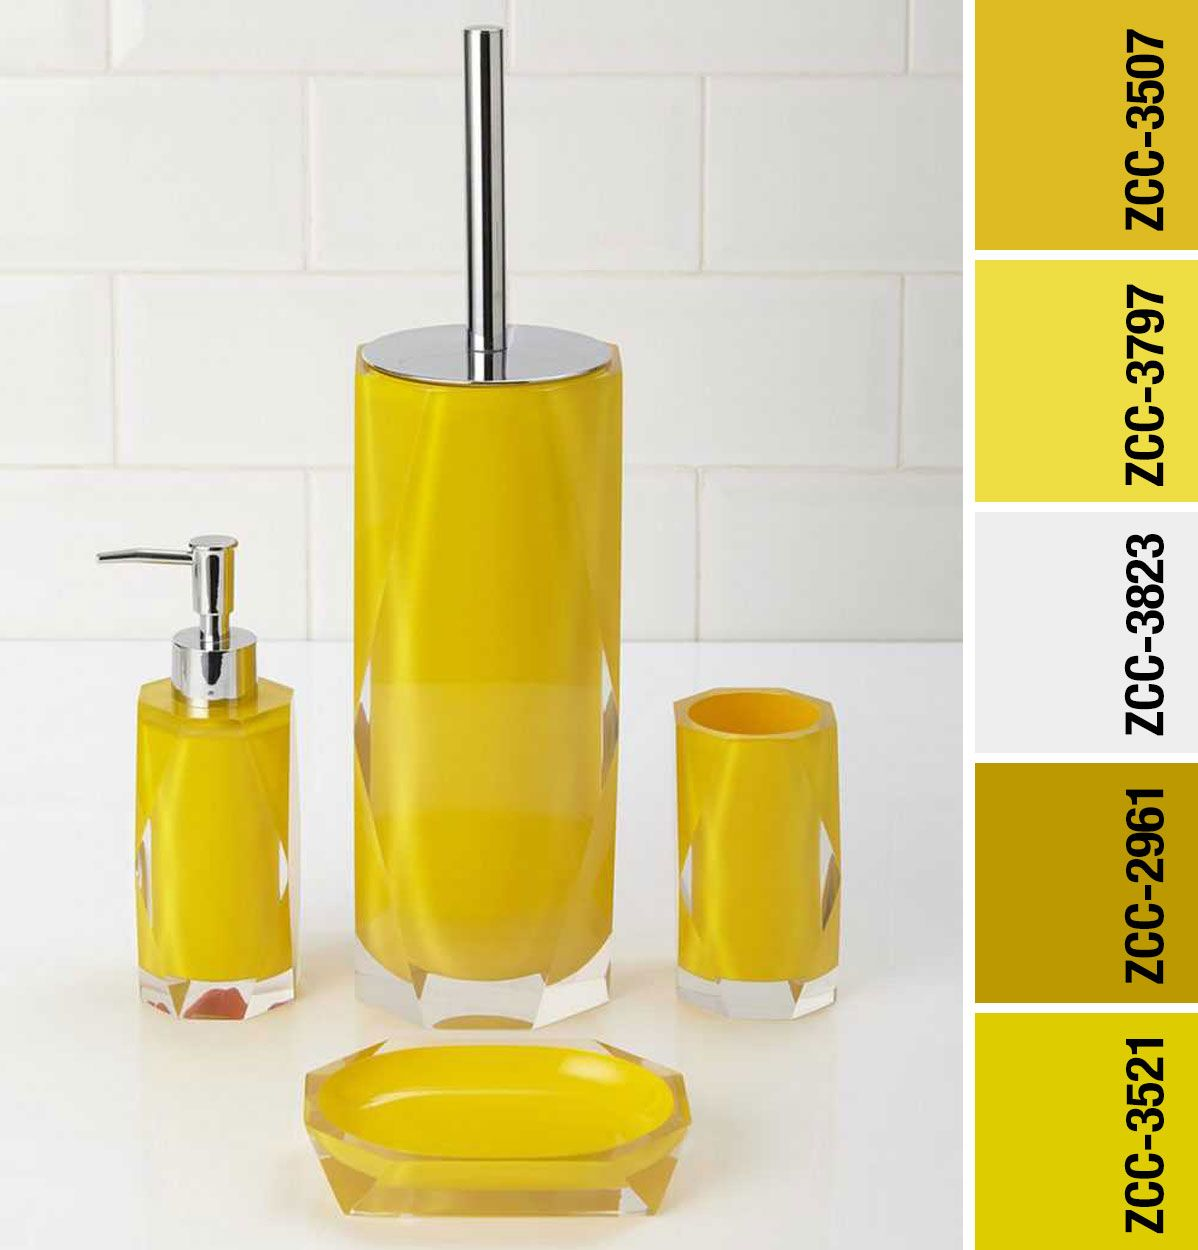 Pin by Z 🌸 on ΜΠΑΝΙΟ in 9  Yellow bathroom accessories